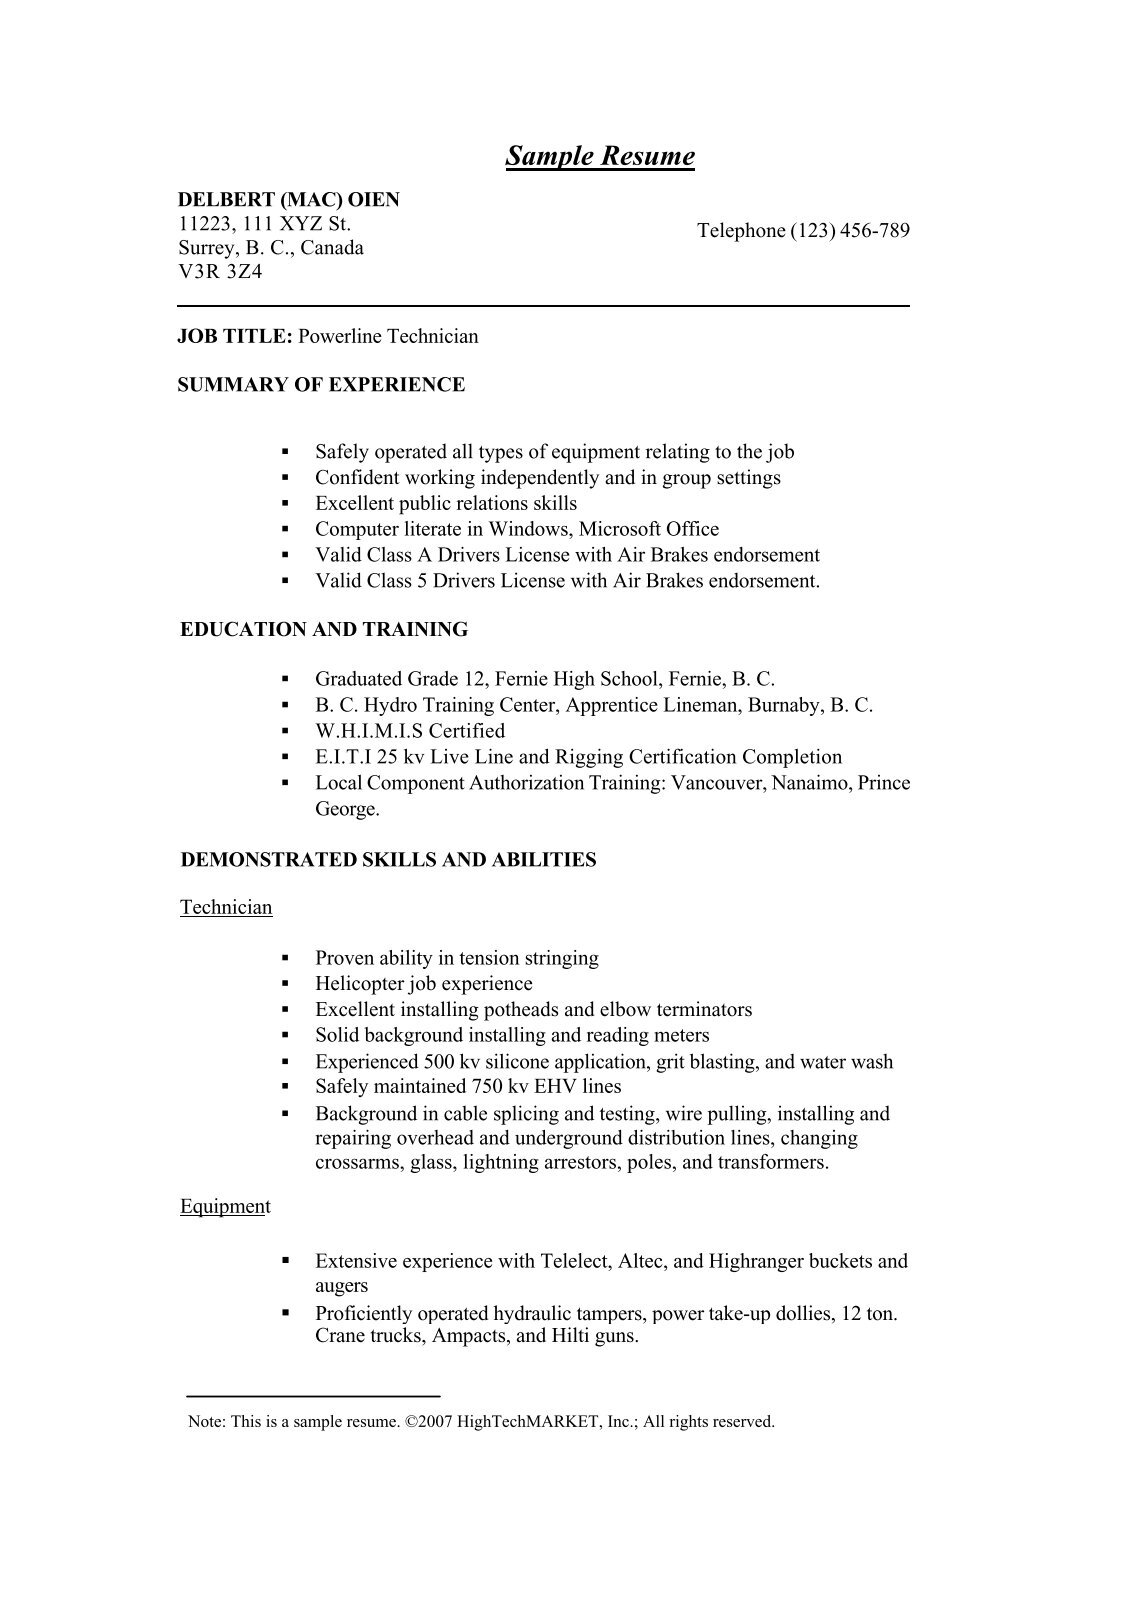 magnificent transfer resume ut mold resume ideas